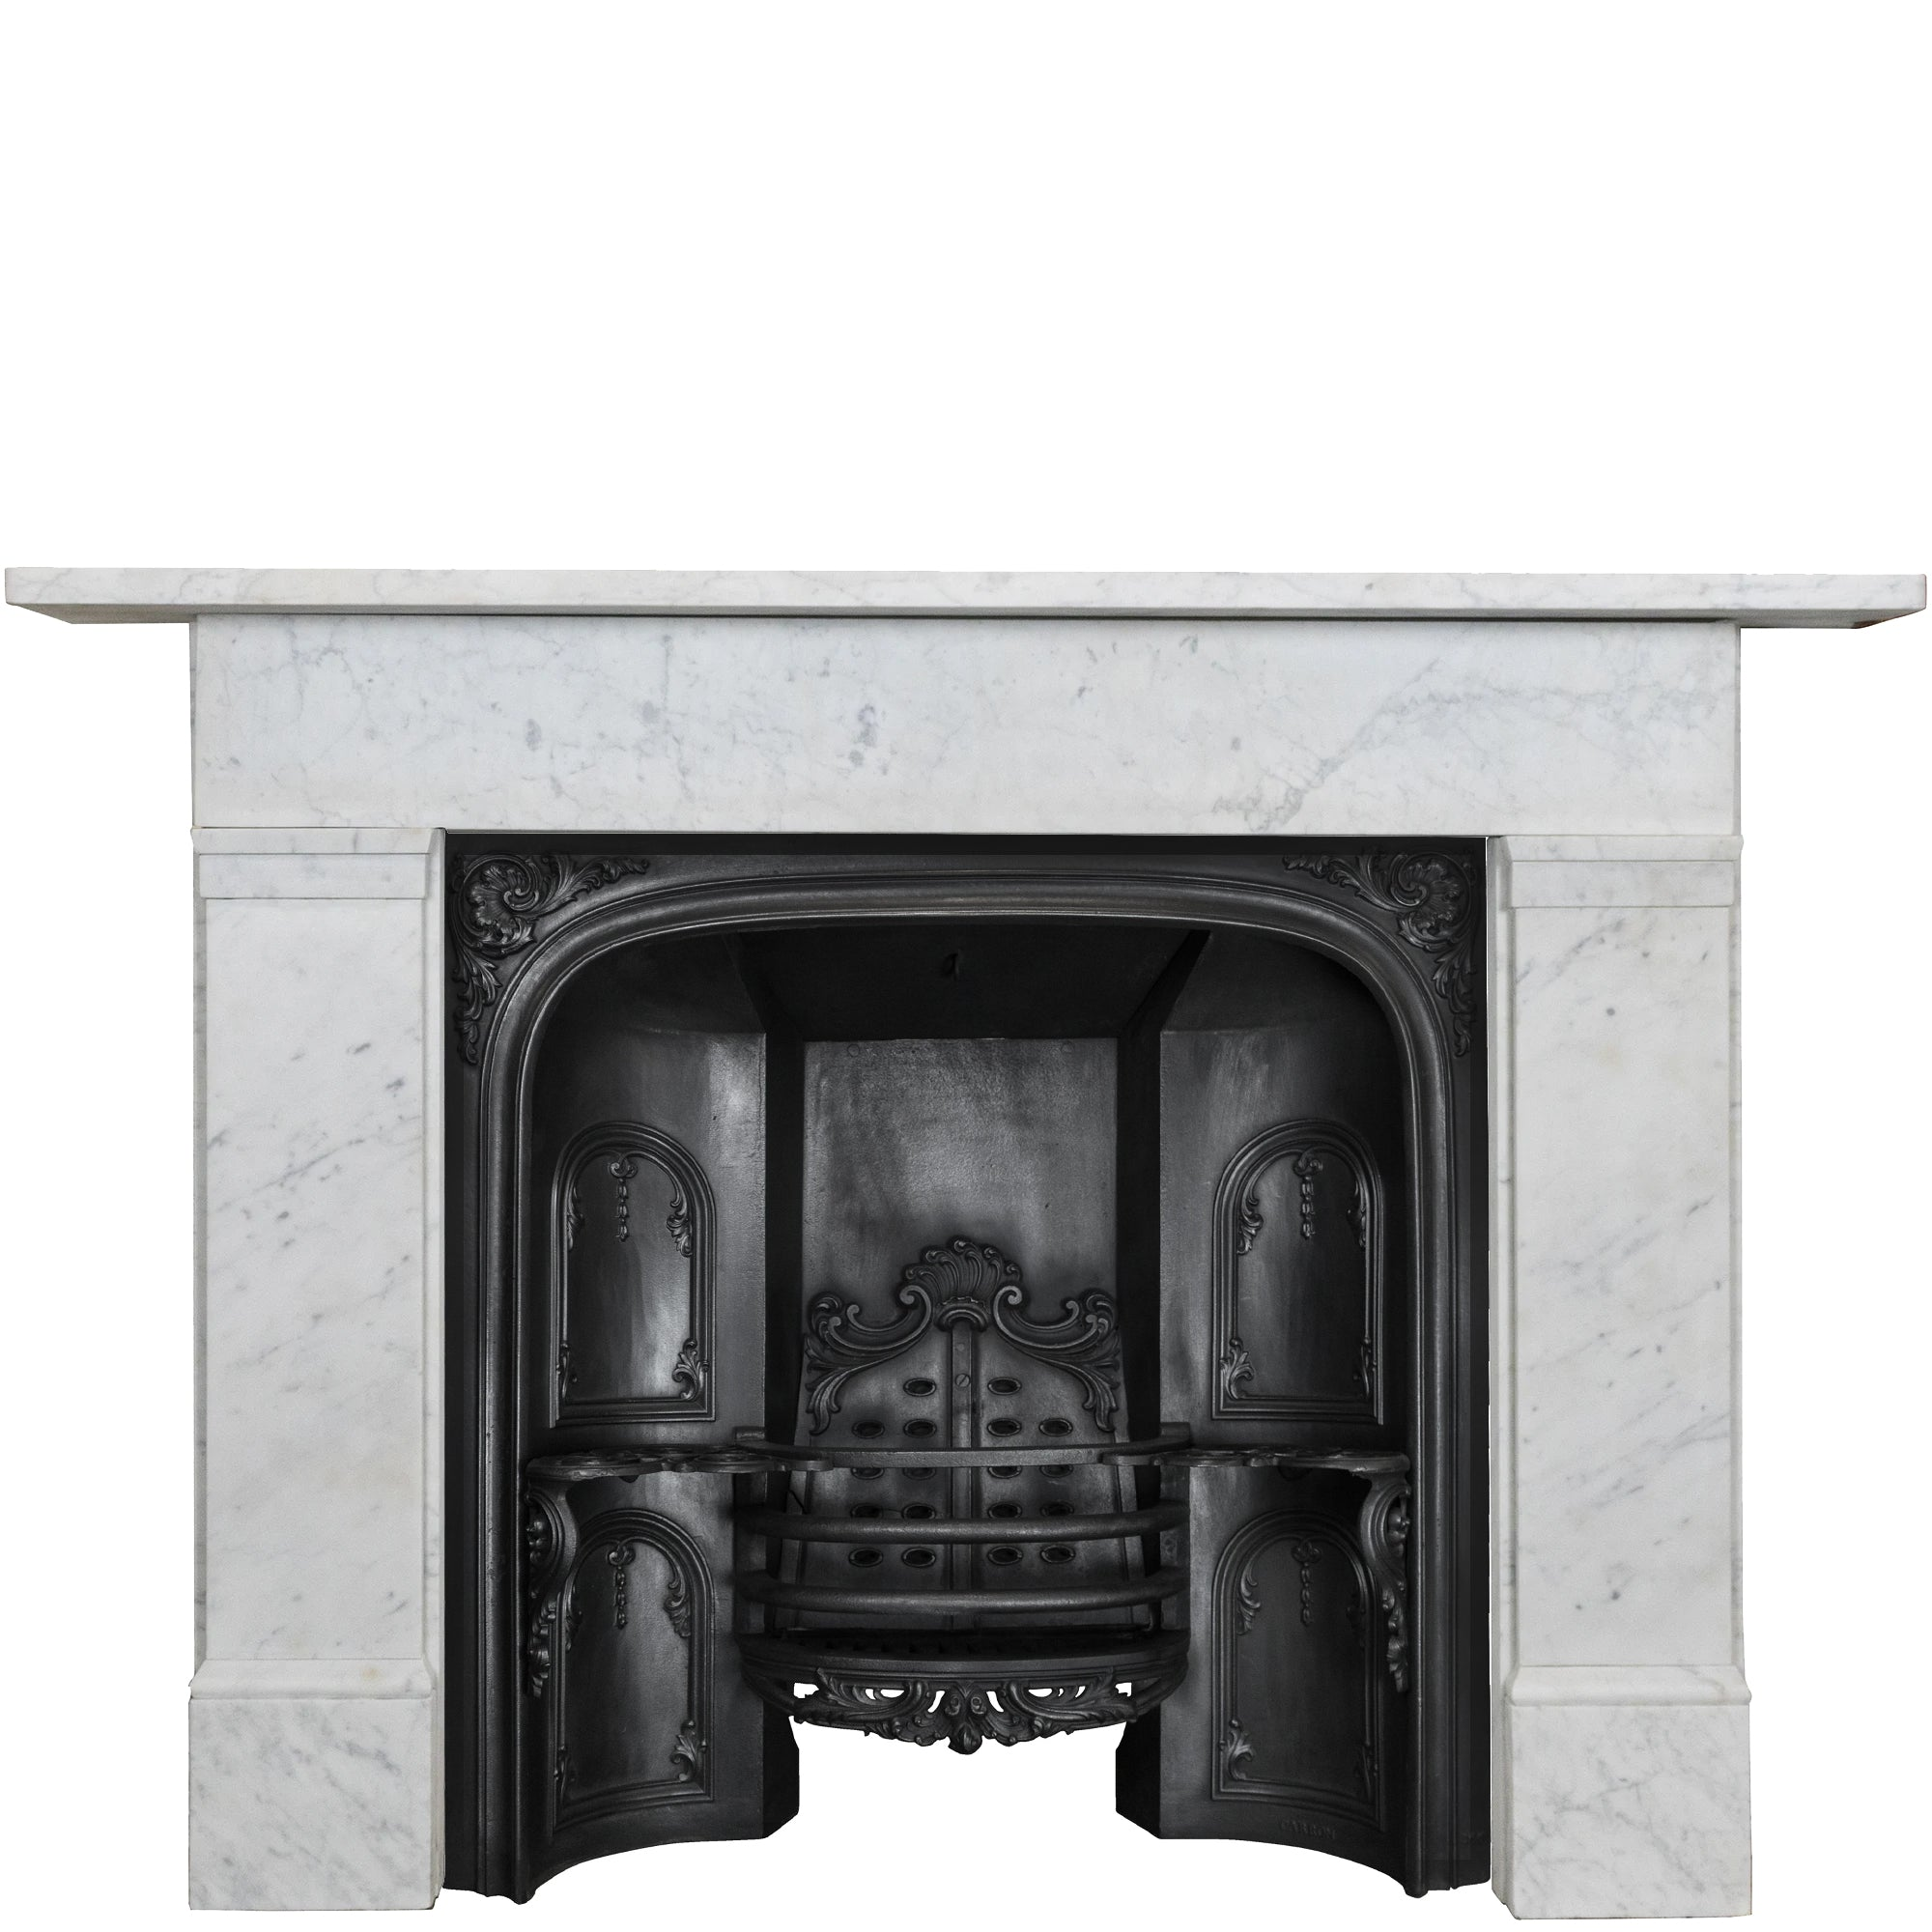 Reclaimed Late Georgian Style Carrara Marble Fireplace Surround